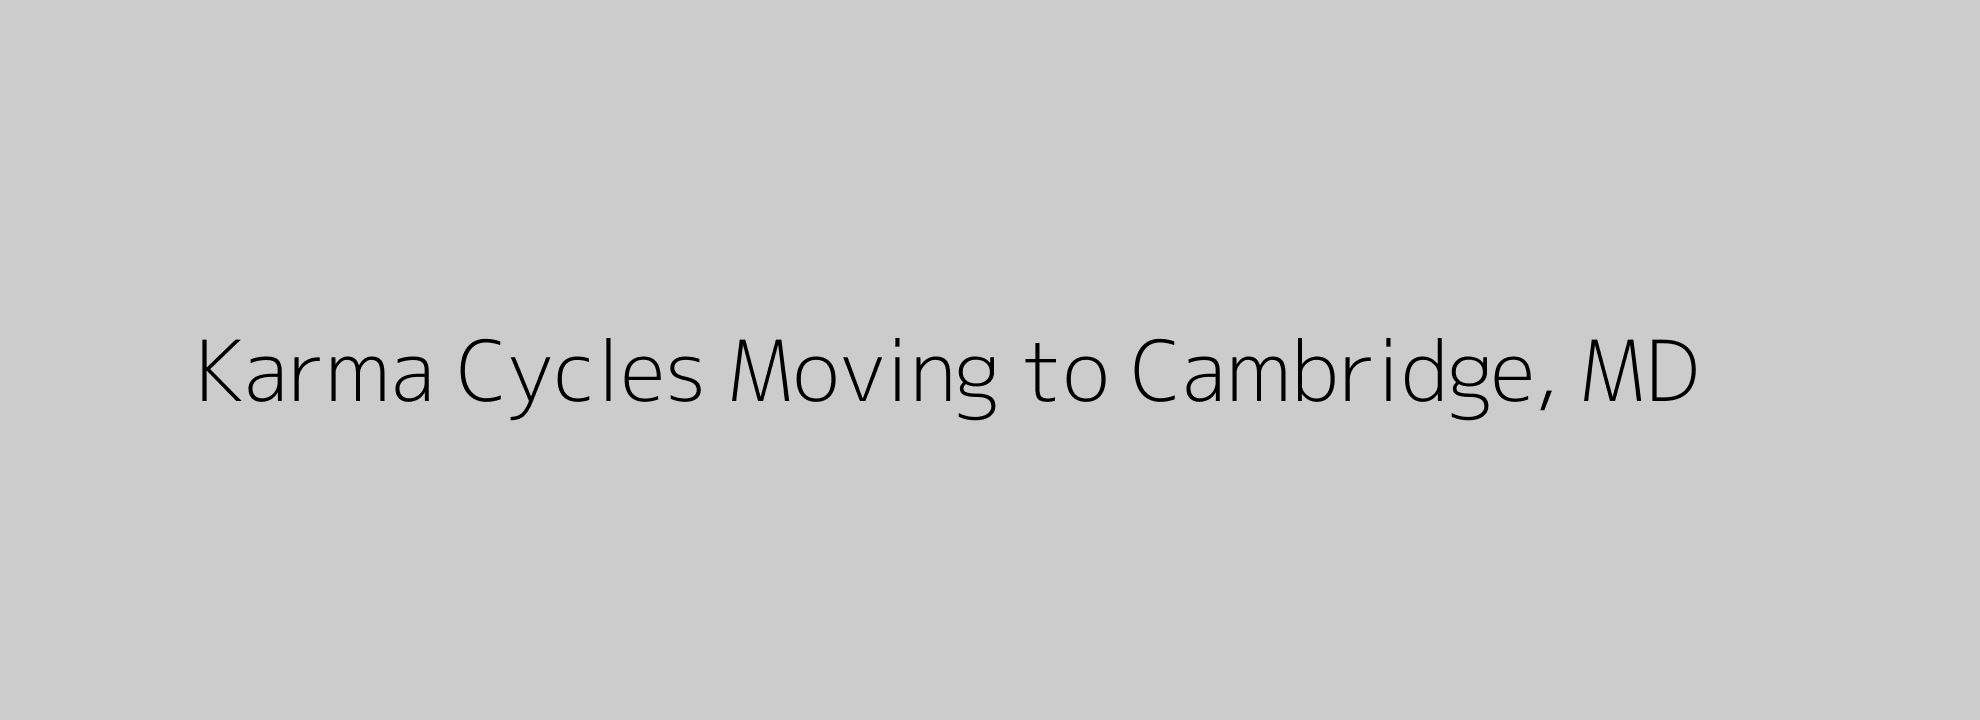 Karma Cycles Moving to Cambridge, MD